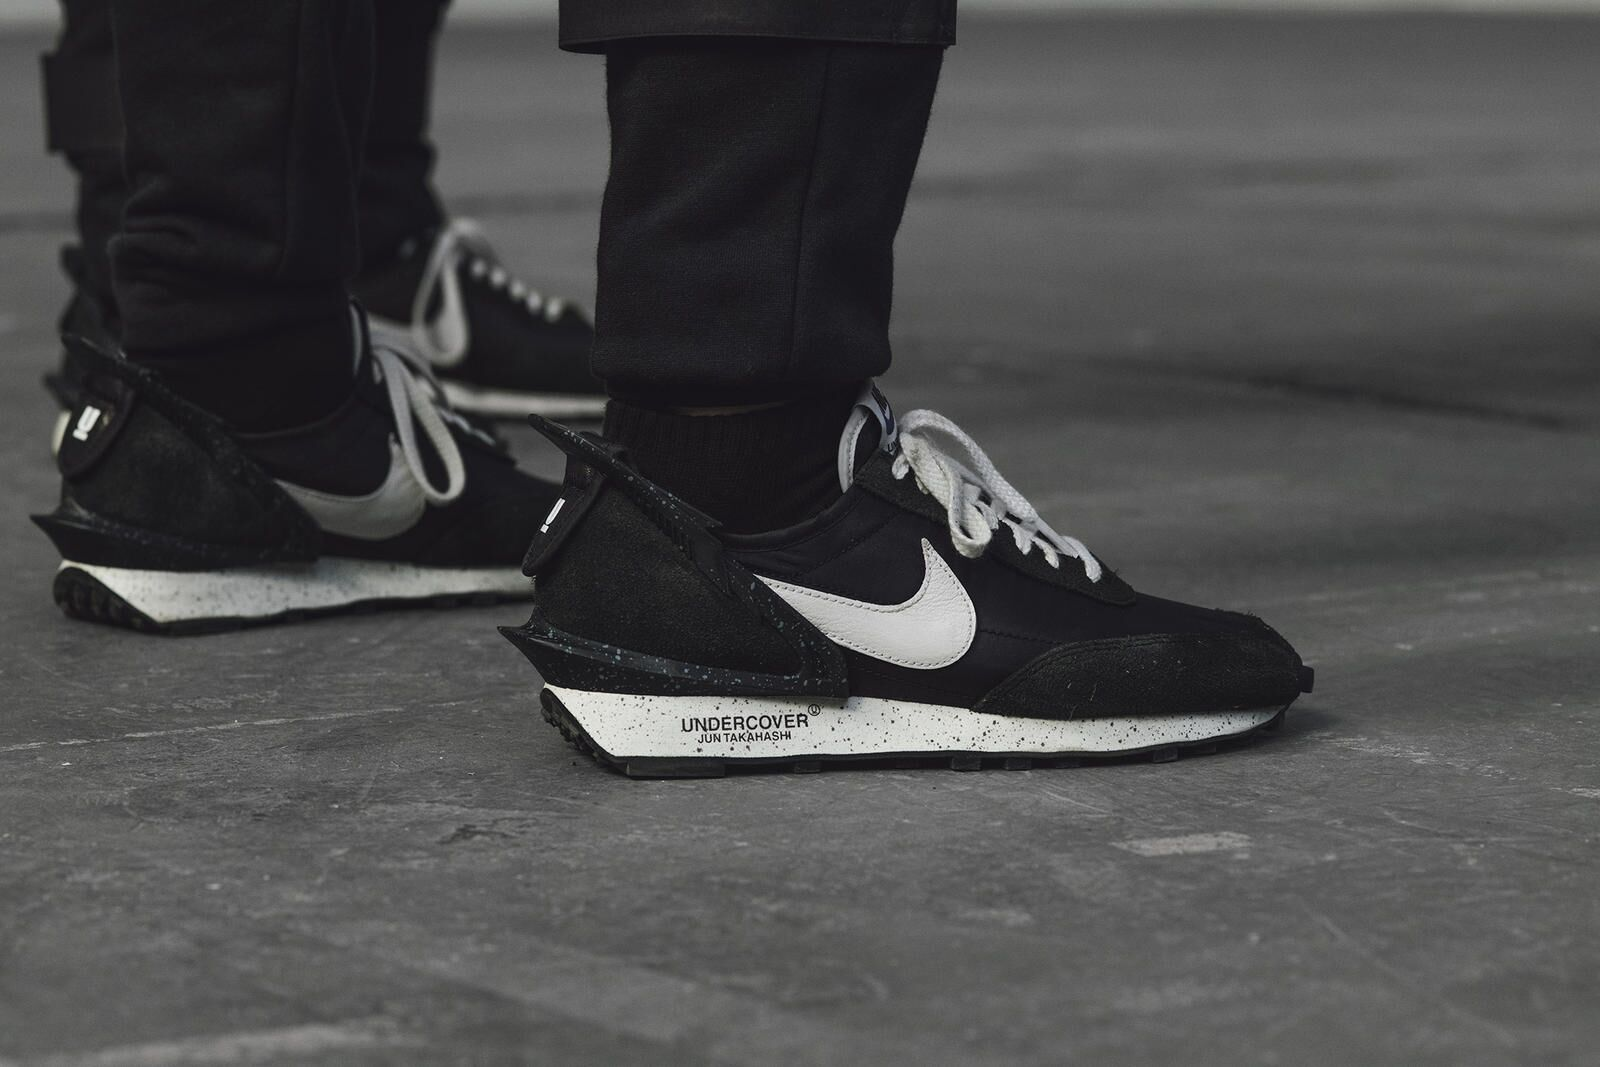 NIKE X UNDERCOVER - Whynot mag